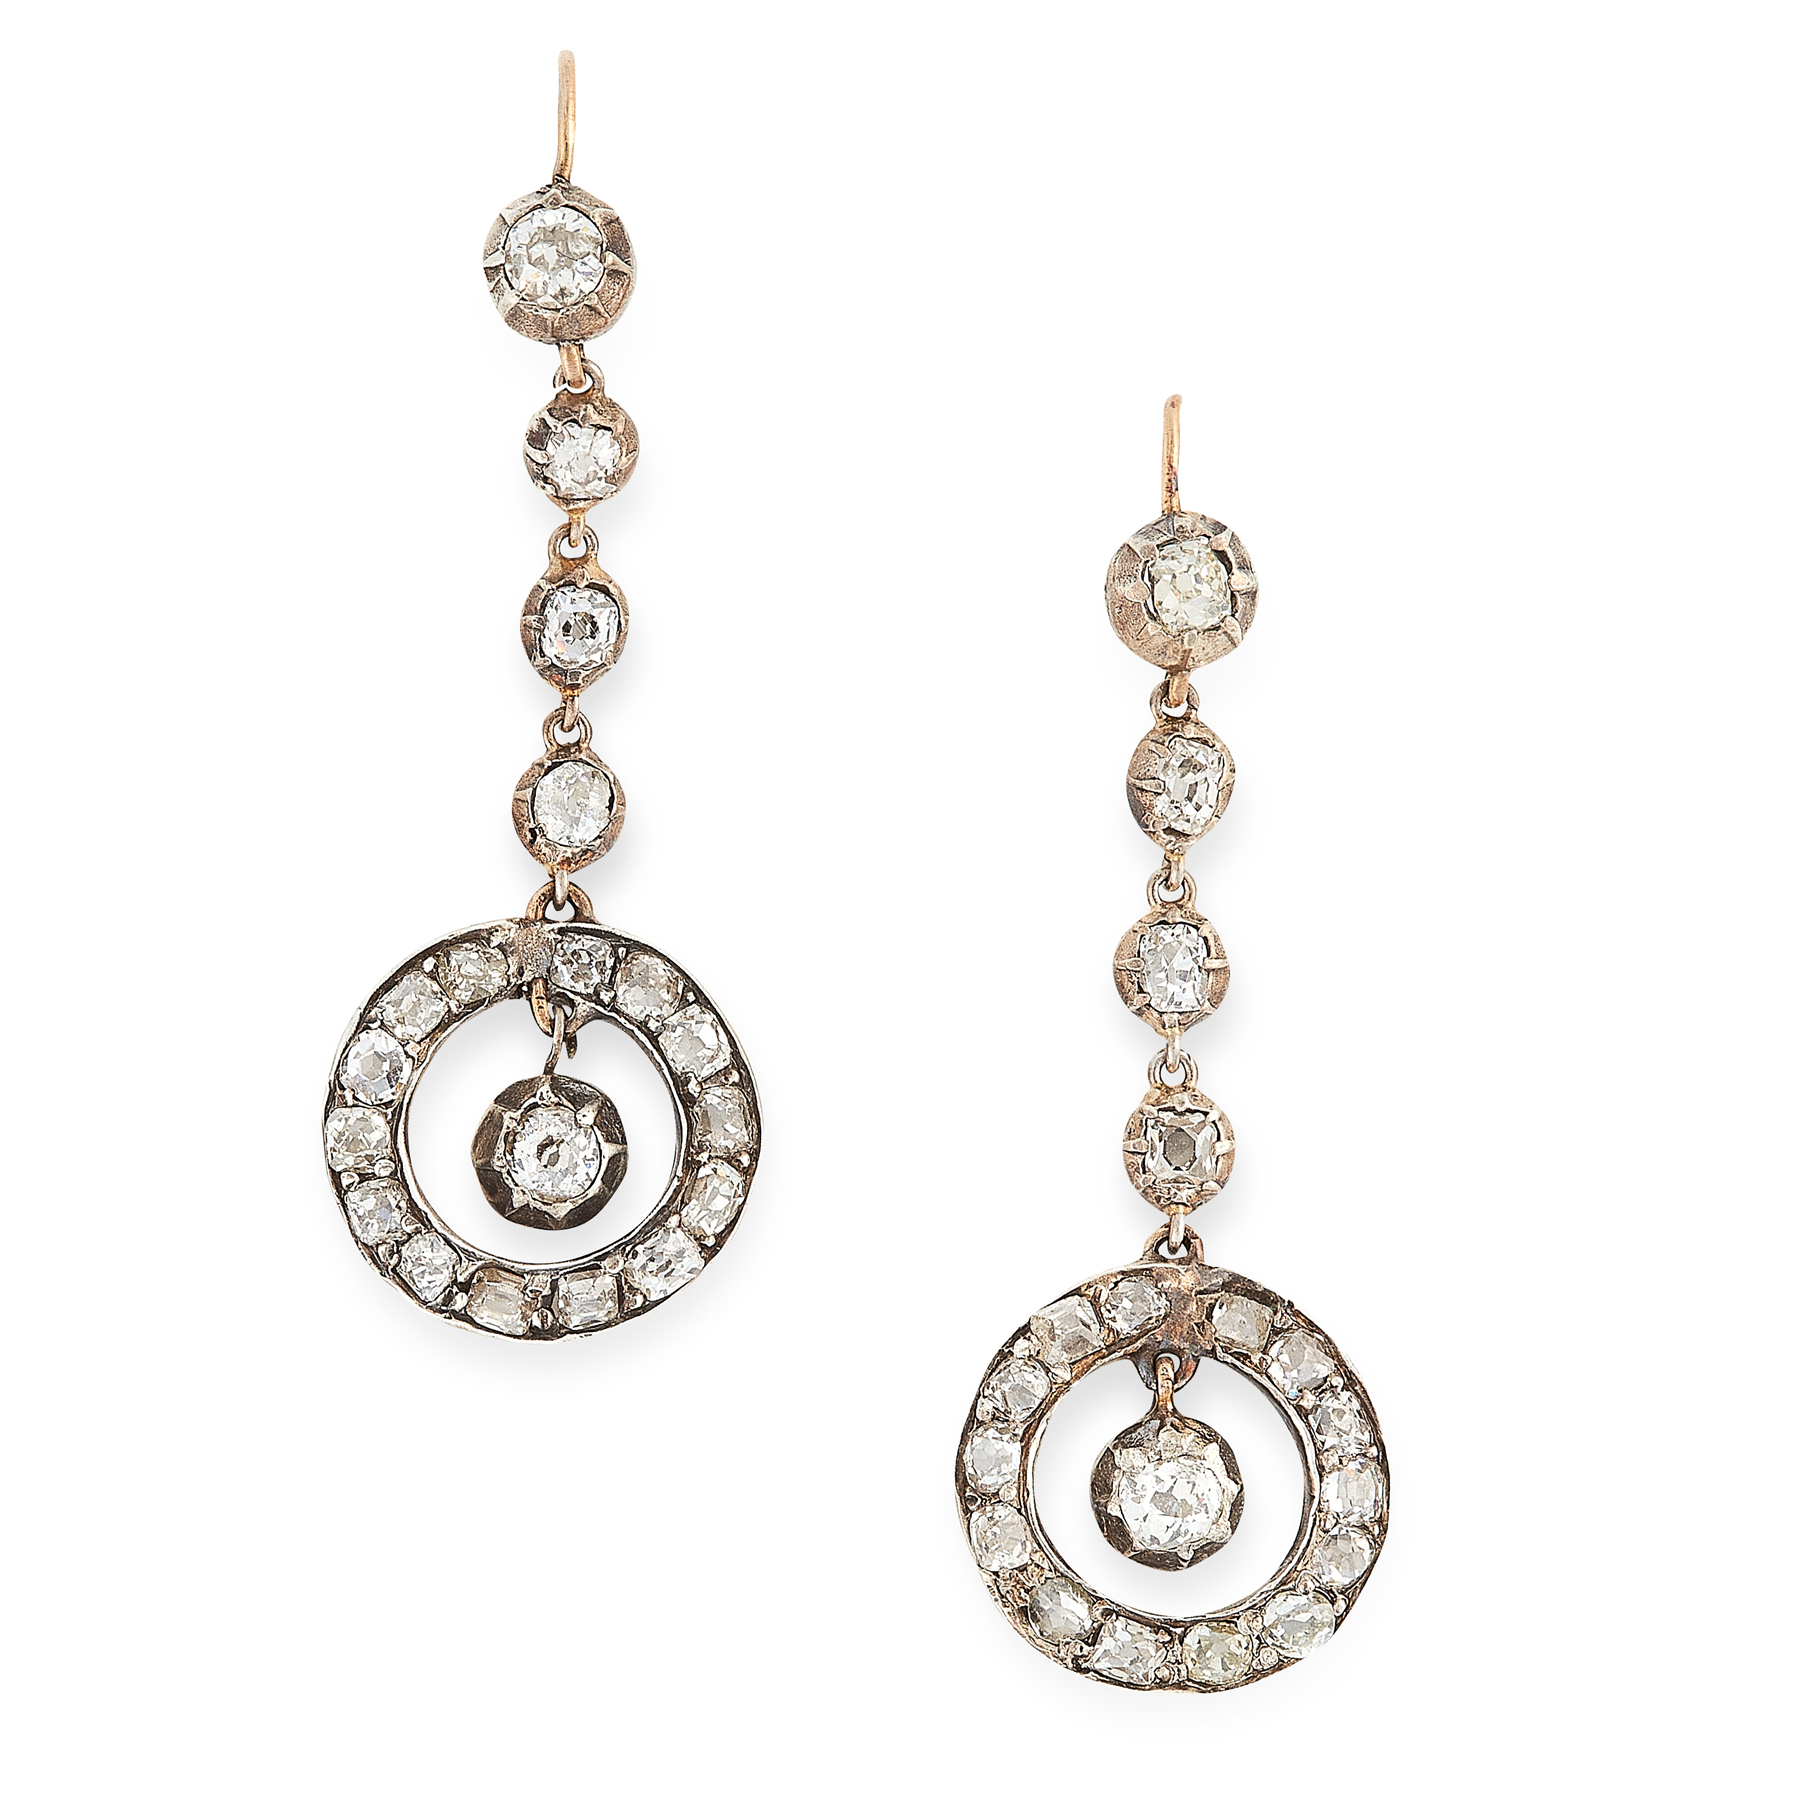 A PAIR OF ANTIQUE DIAMOND DROP EARRINGS in yellow gold and silver, each formed of a row of old cut